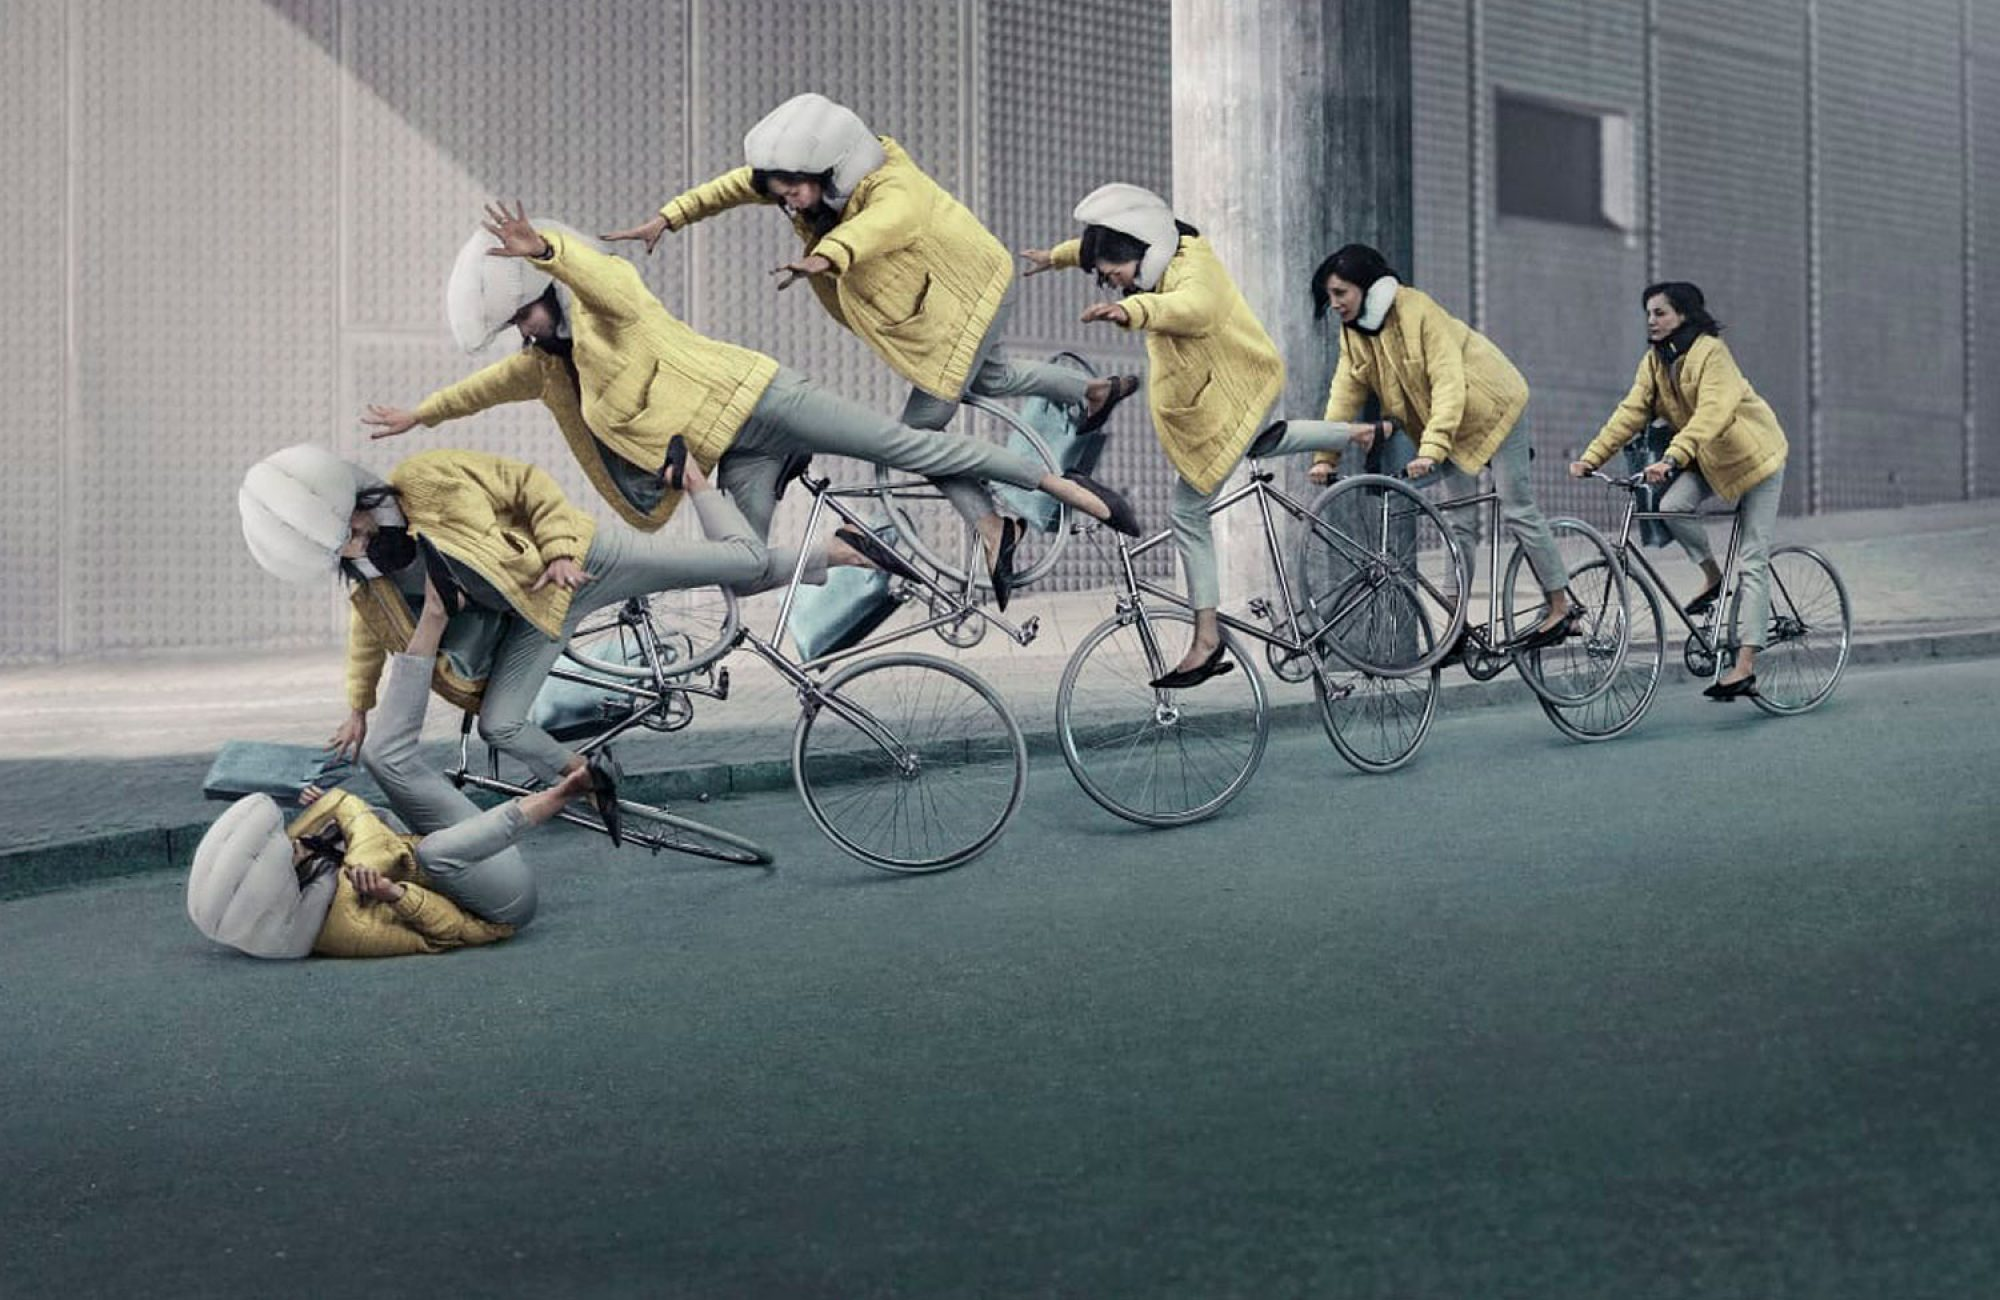 Hovding-3-Airbag-Helmet-Cyclist-Urban-Bike-Design-Accident